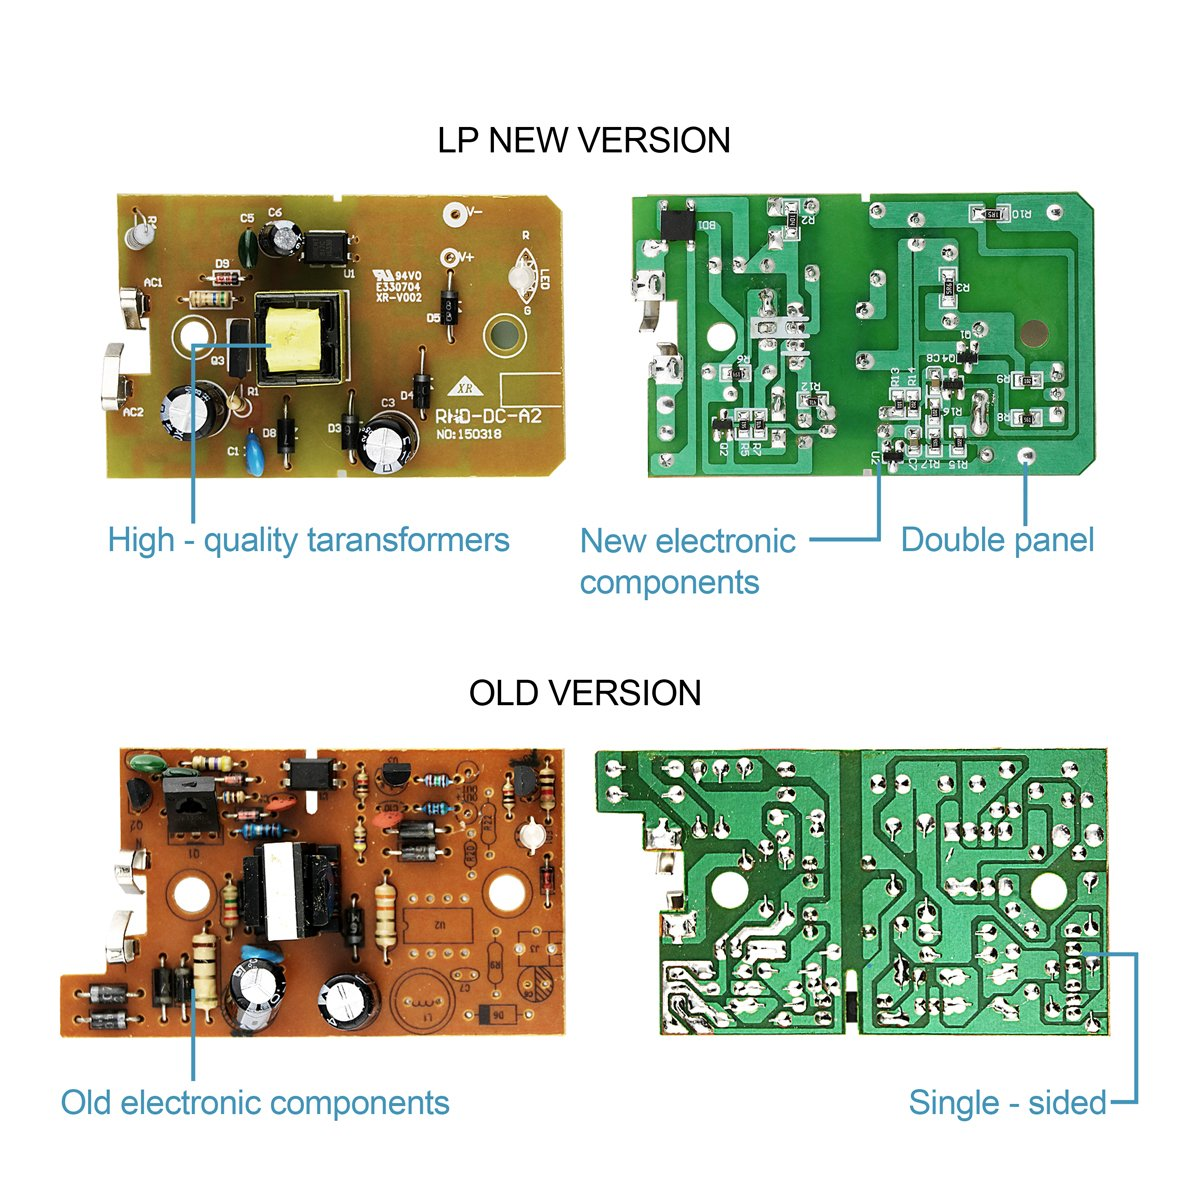 Lp Battery Charger For E8 Compatible With 8210 Mobile Phone Travel Circuit Diagram Batterycharger Rebel T2i T3i T4i T5i 550d 600d 650d 700d Kiss X4 X5 X6i X7i Digital Slr